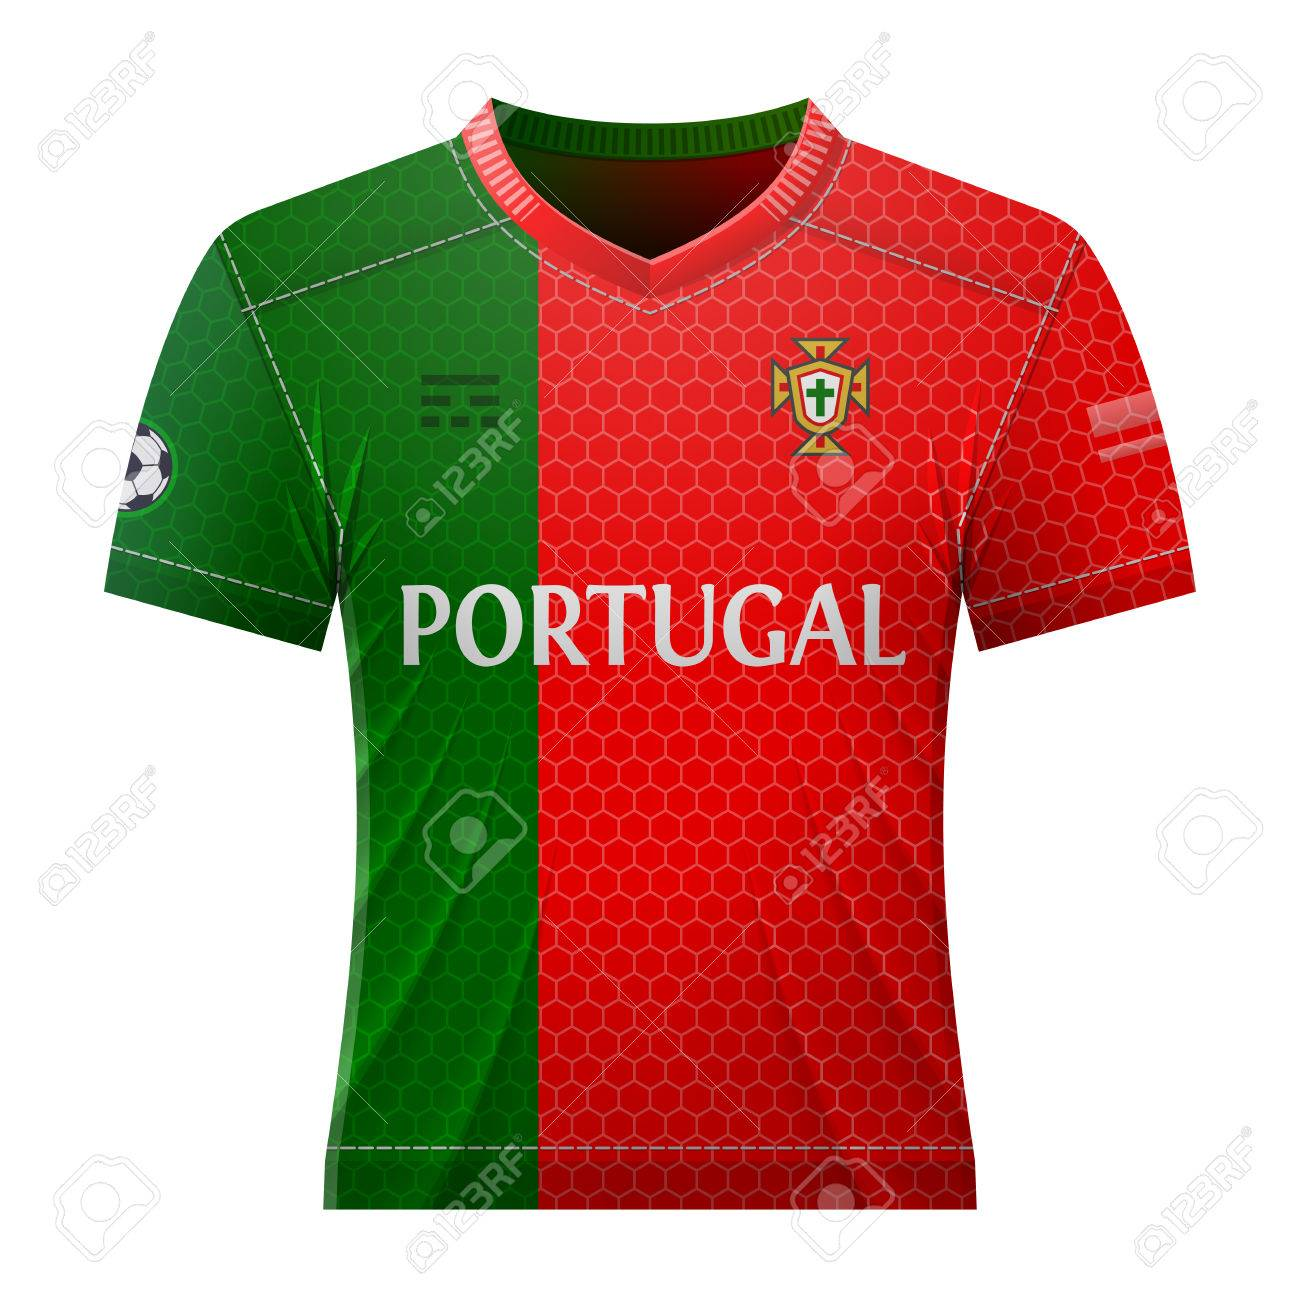 d13a49330 Soccer shirt in colors of portuguese flag. National jersey for football team  of Portugal.